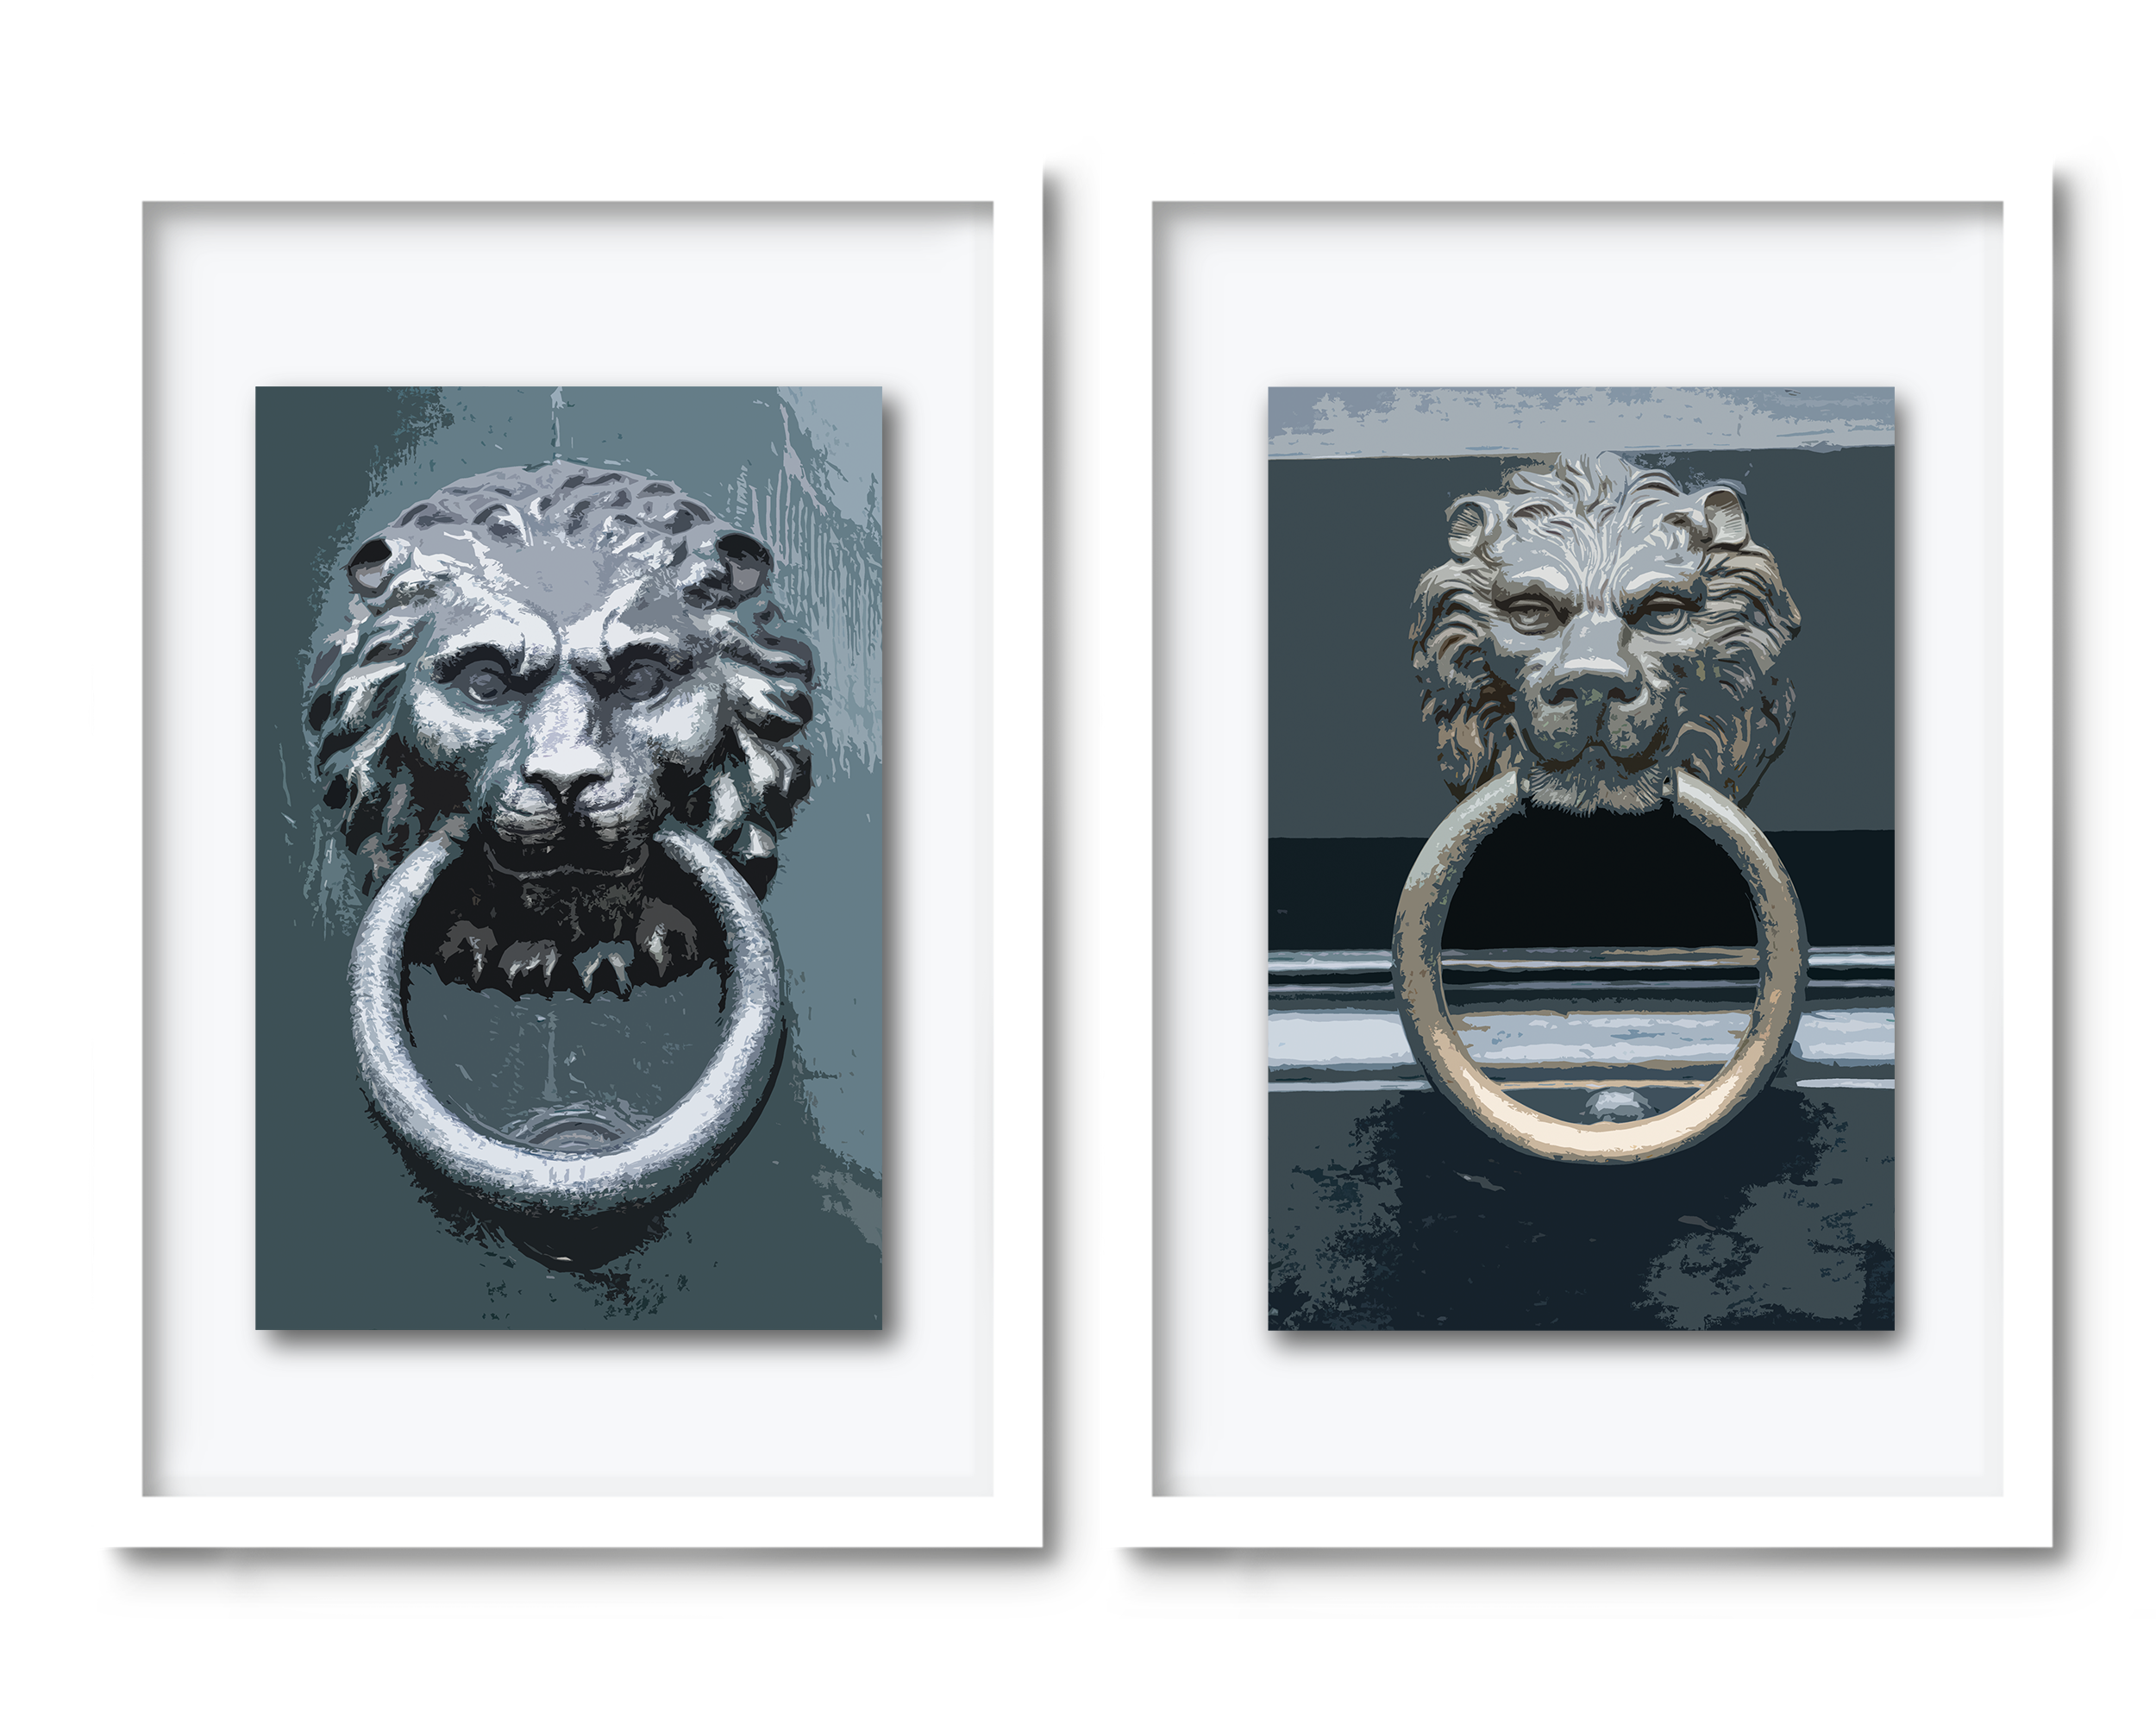 37.david-pearce-lion-door-knocker.png